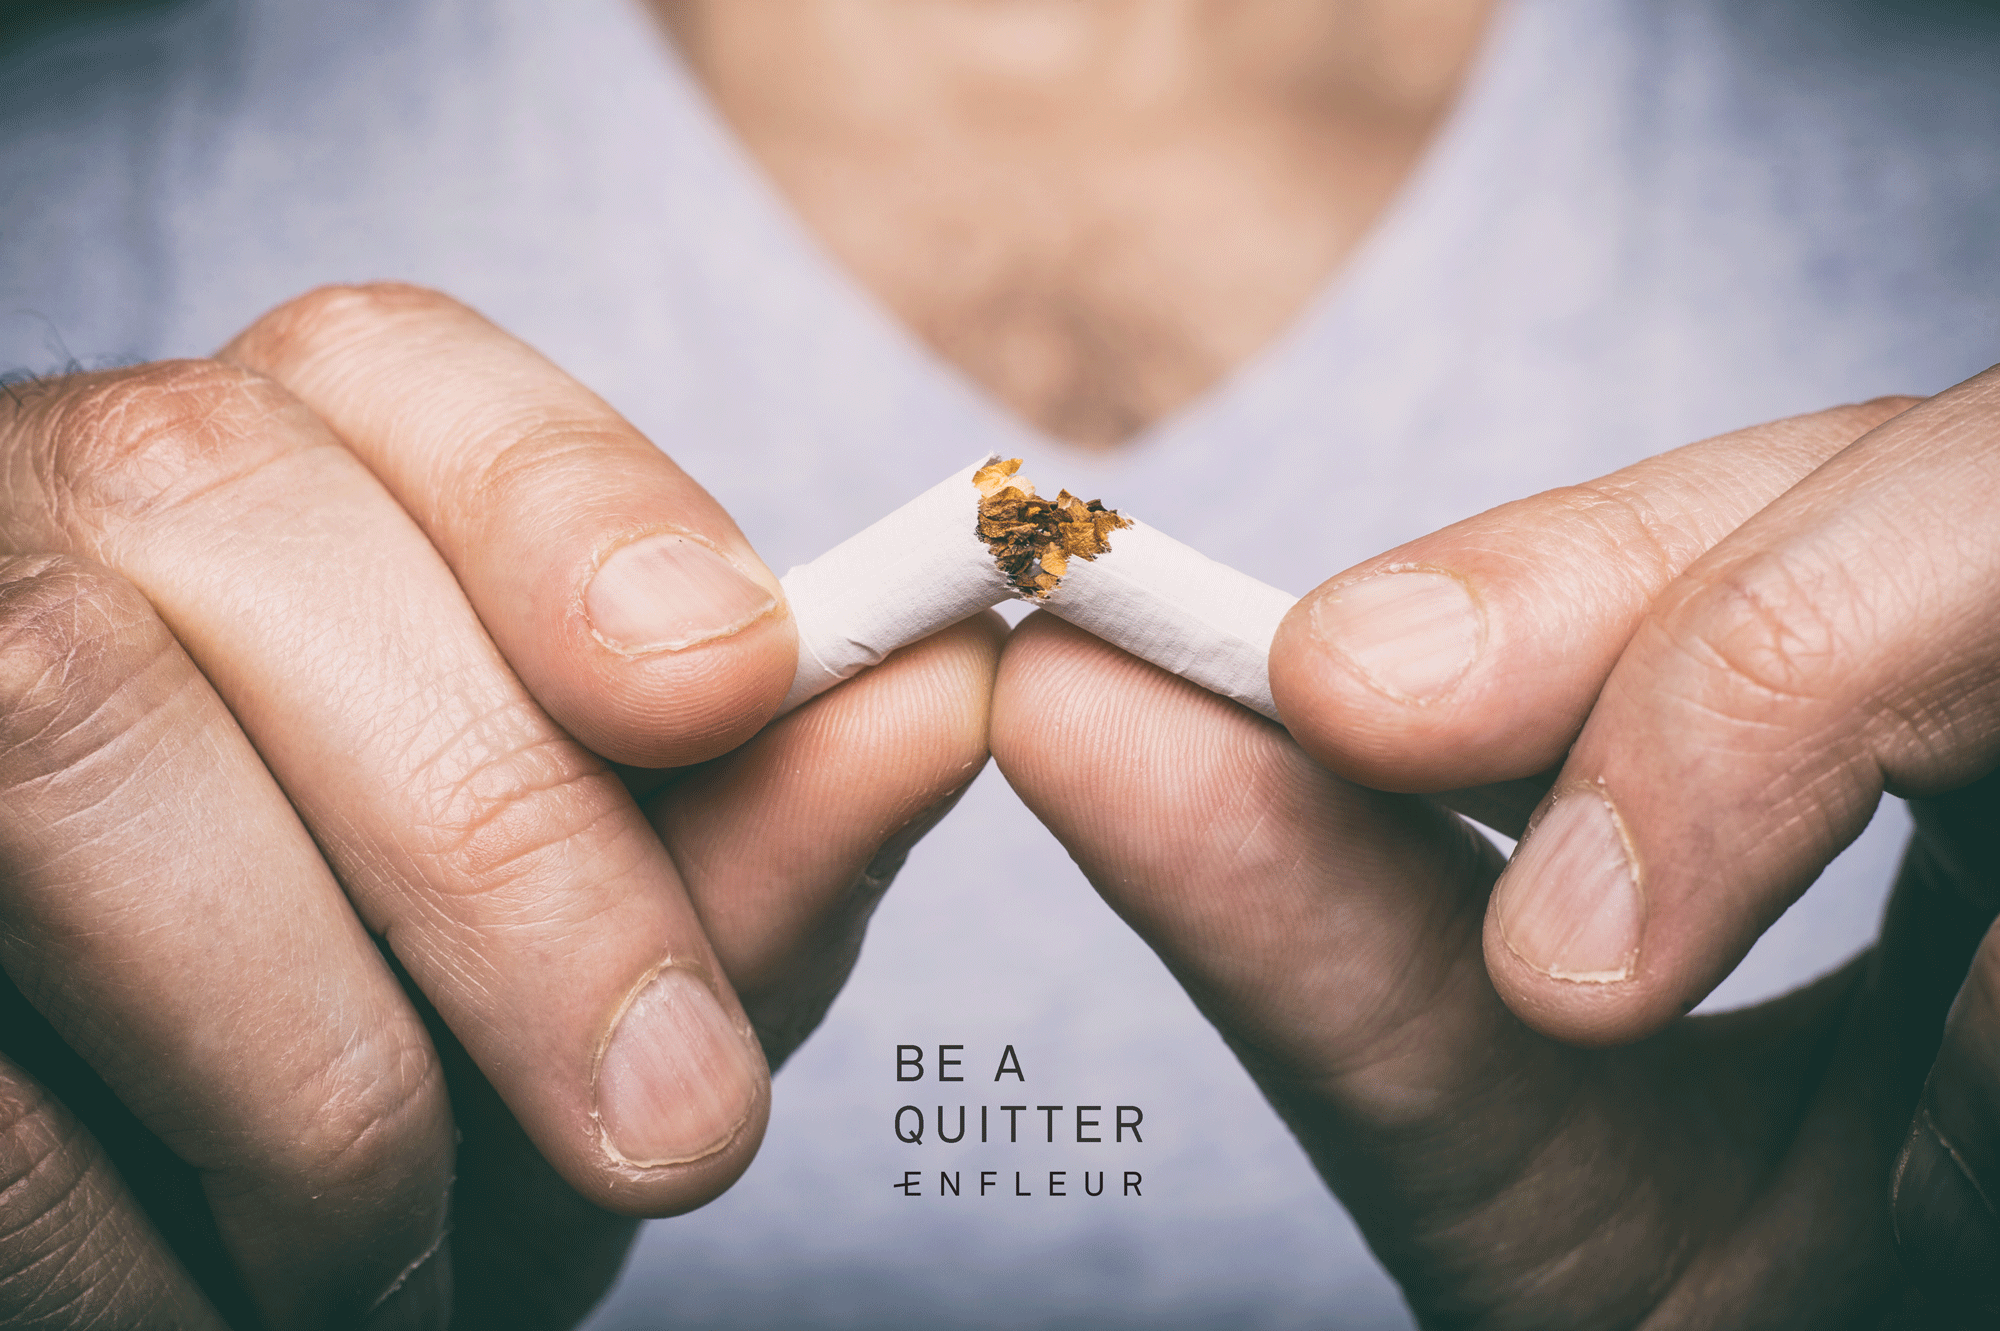 enfleur-blog-smoking-quit-cbd_01.png